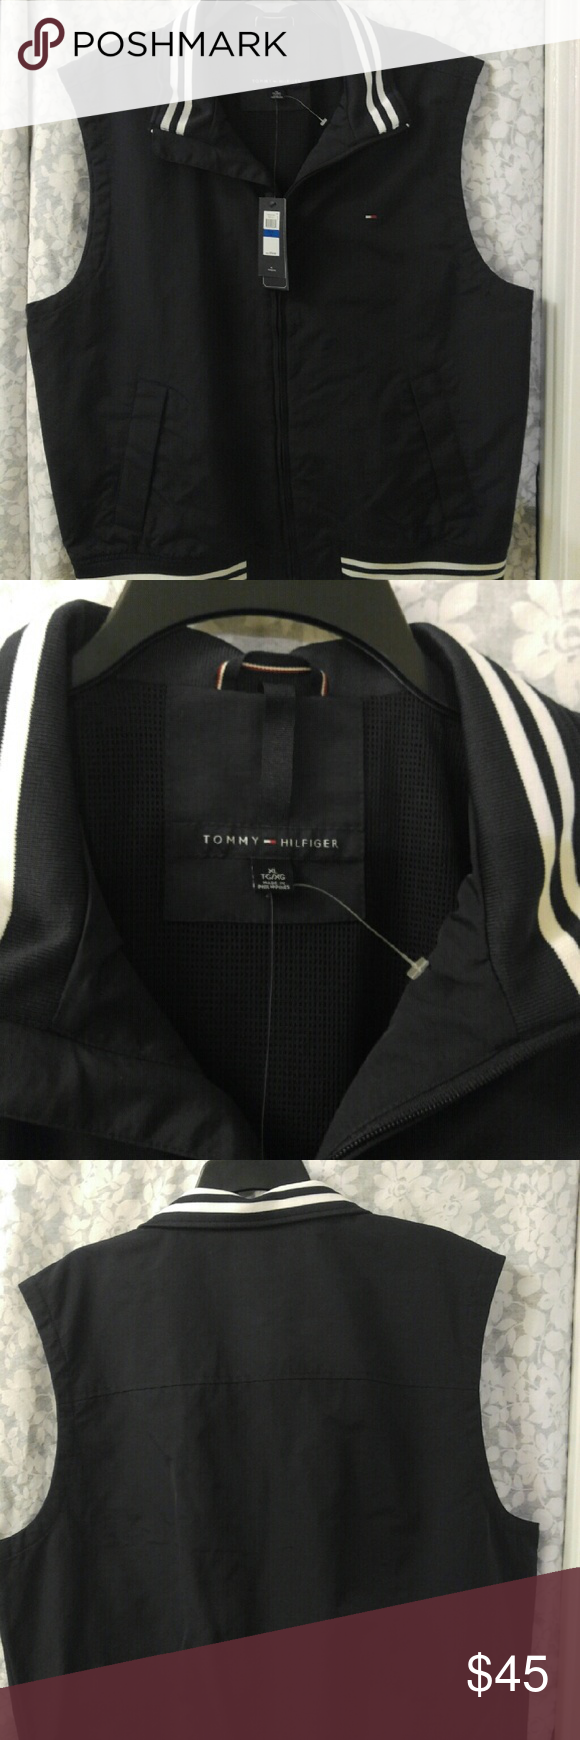 New with Tags Tommy Hilfiger Vest New with Tags All weather vest Zipper front Smoke free home Tommy Hilfiger Jackets & Coats Vests